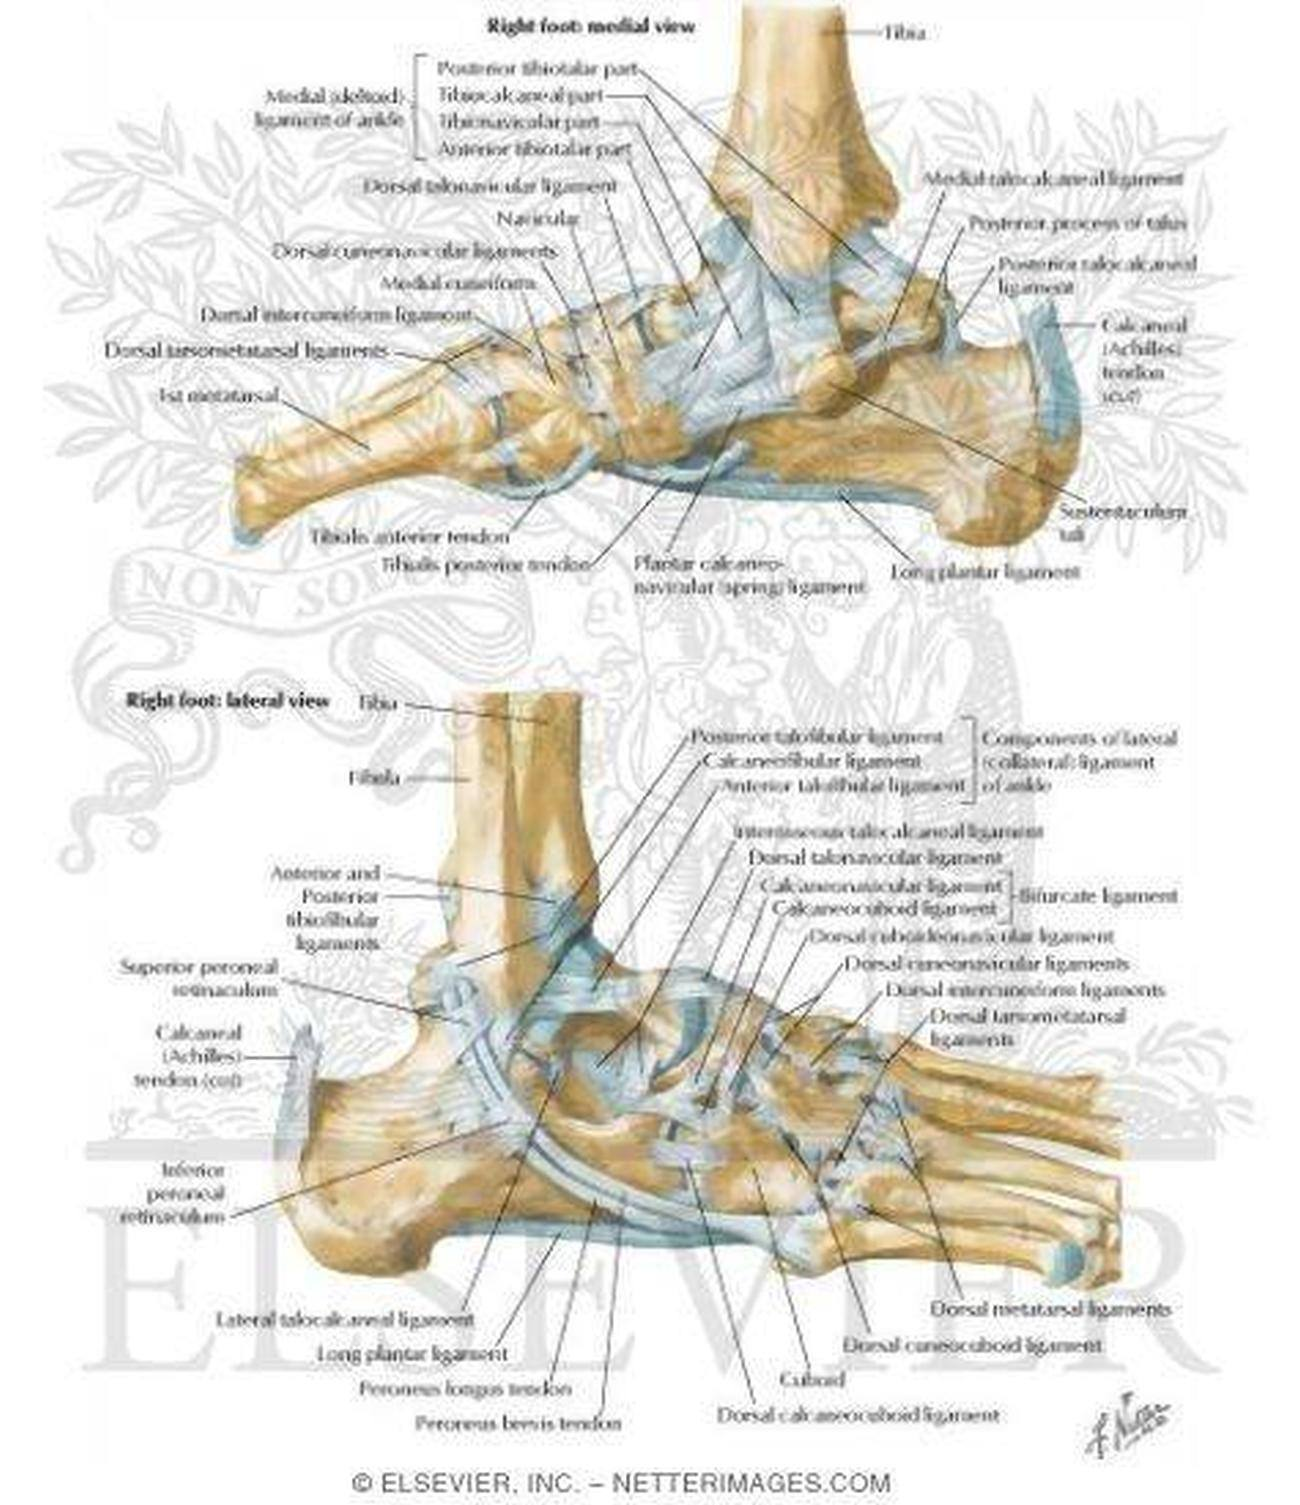 Pictures of ankle joint ligaments pictures of ankle joint ligaments 33 pooptronica